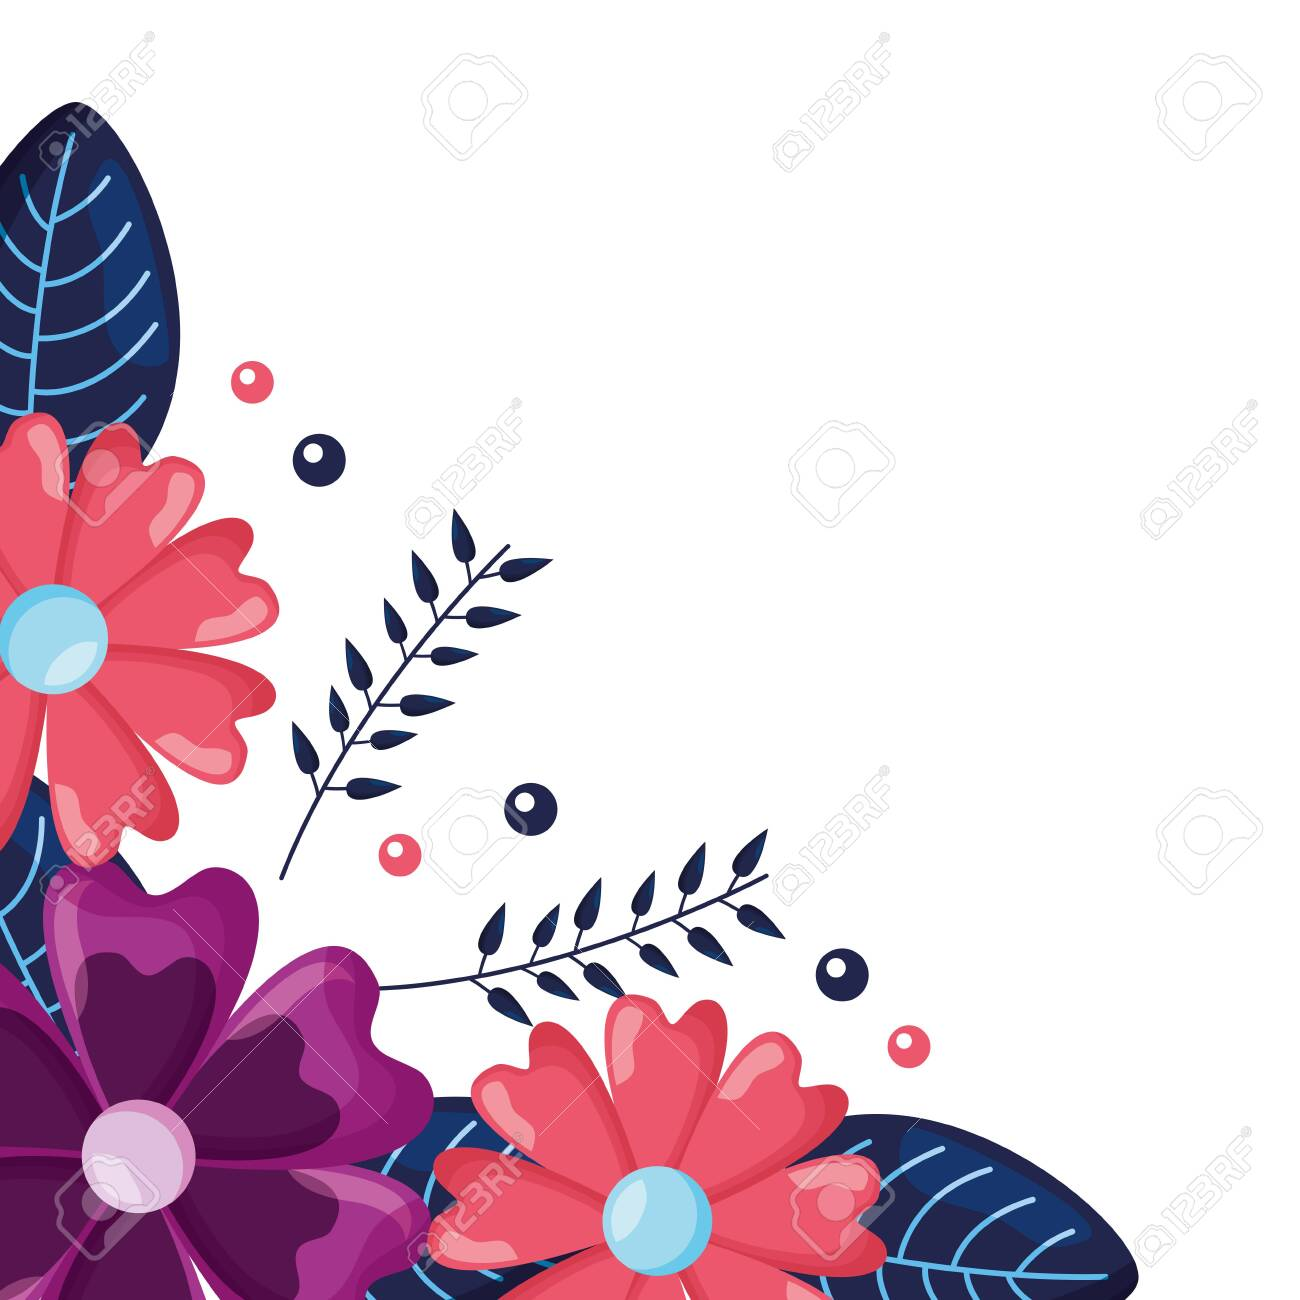 corner decoration natural floral flowers vector illustration royalty free cliparts vectors and stock illustration image 121940564 corner decoration natural floral flowers vector illustration